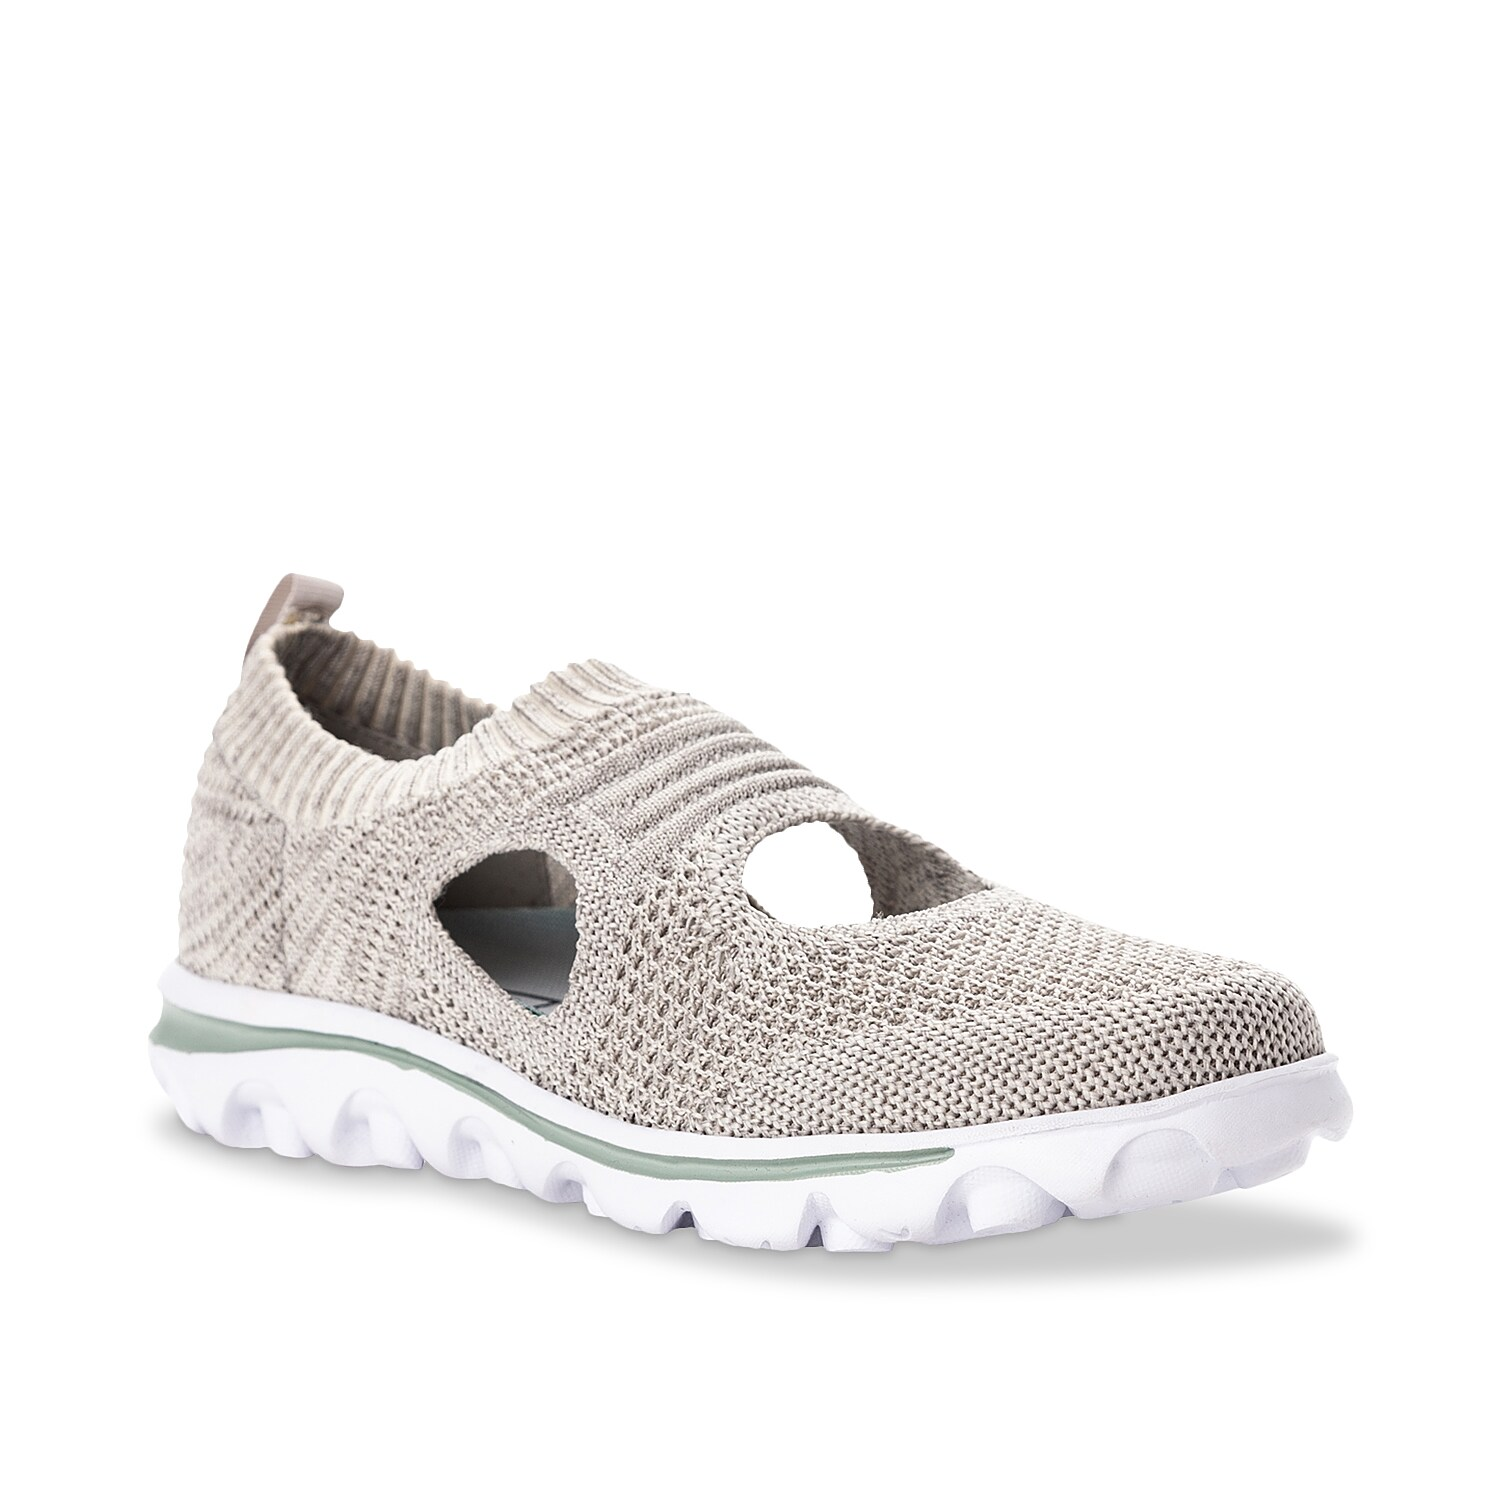 Stay comfortable anywhere you go with the Travelactiv slip-on from Propet. The lightweight TravelTek™ EVA sole provides durability and traction in every step.